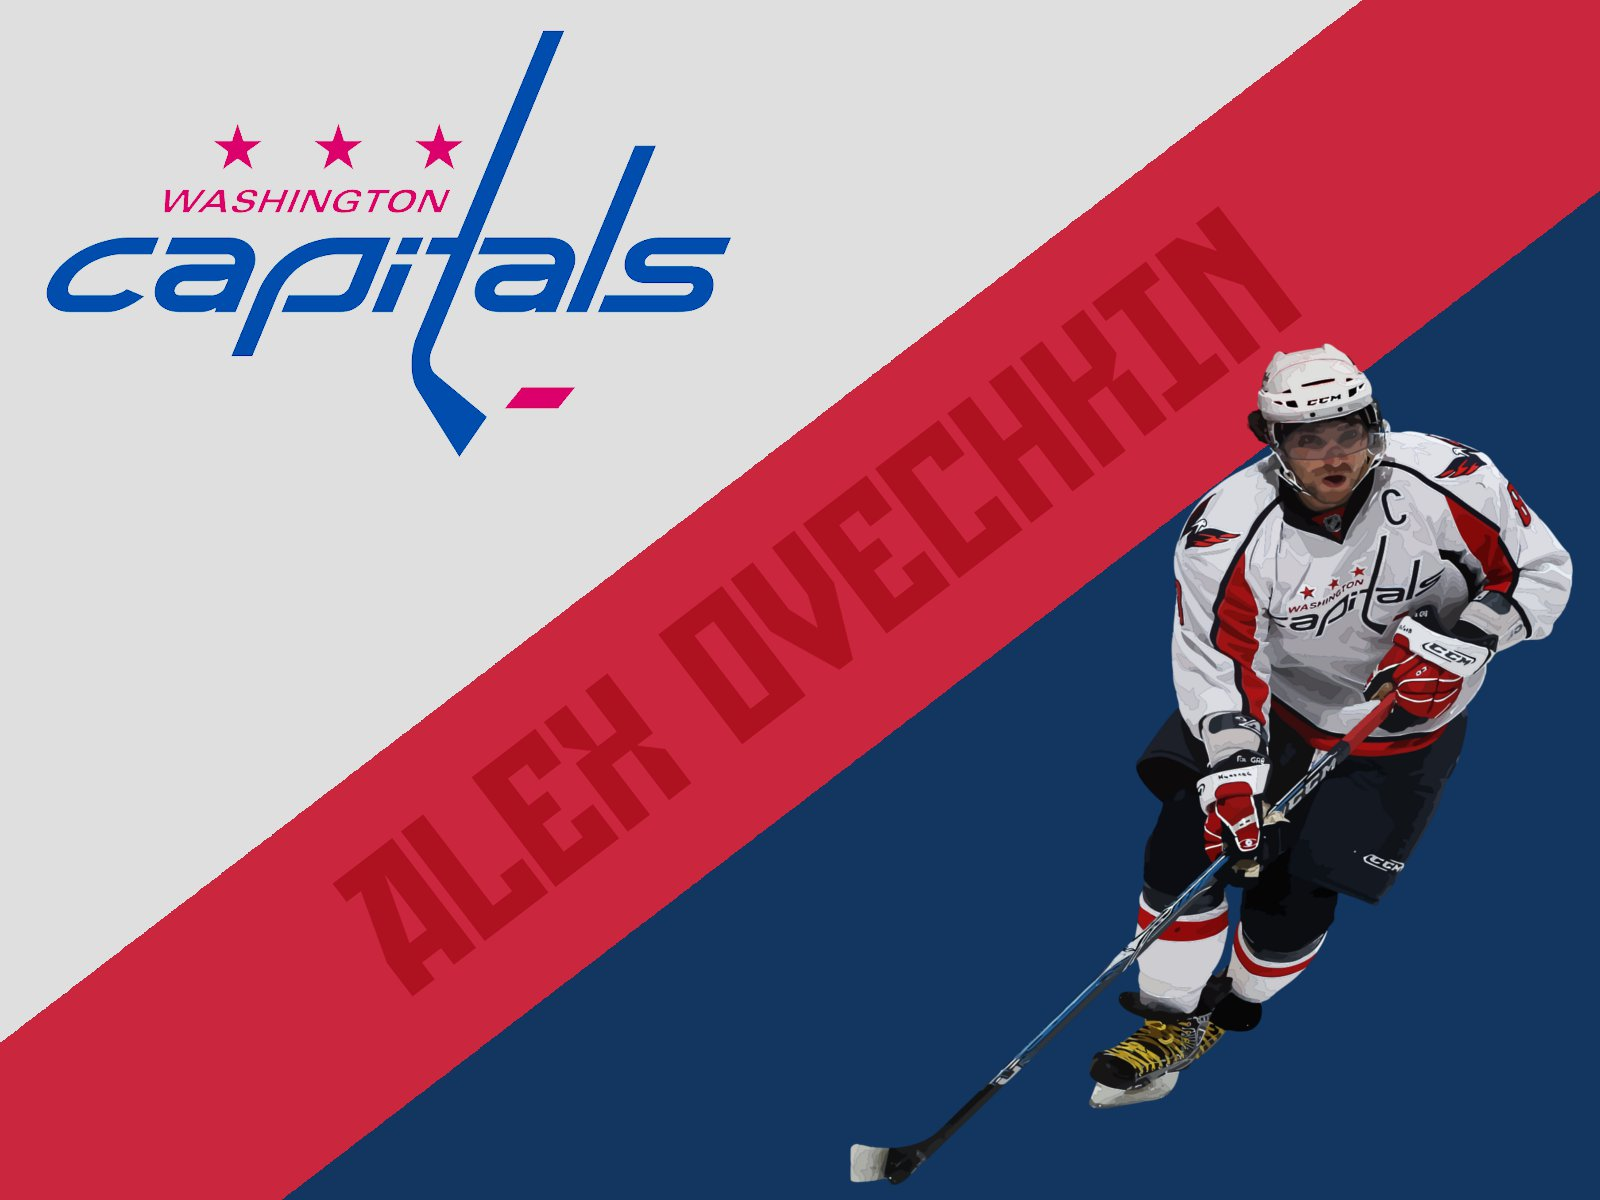 Washington Capitals Desktop Wallpaper Collection 1600x1200